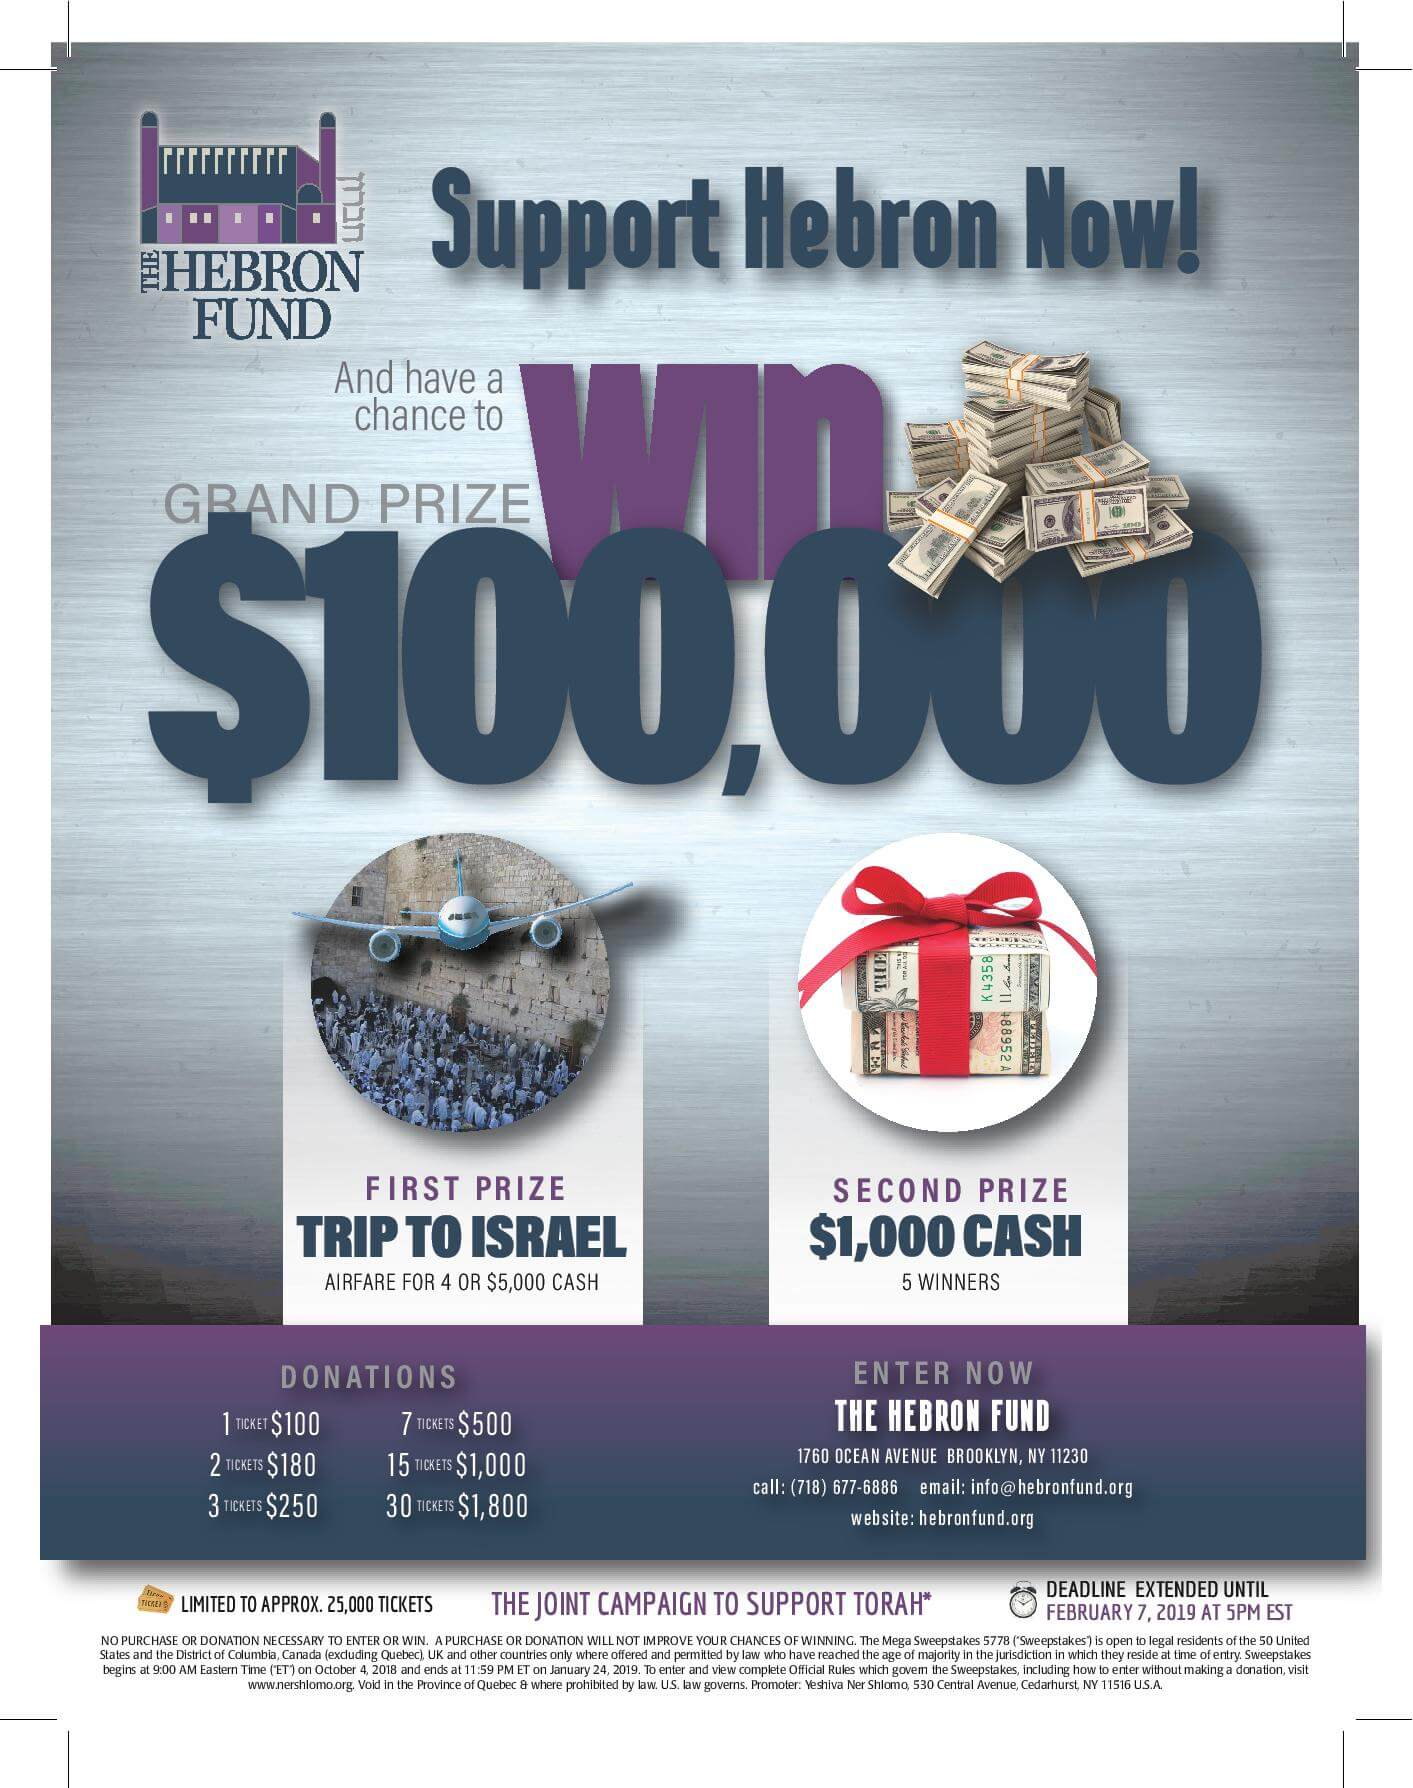 Grand Raffle - Win Big & Support Hebron | The Hebron Fund